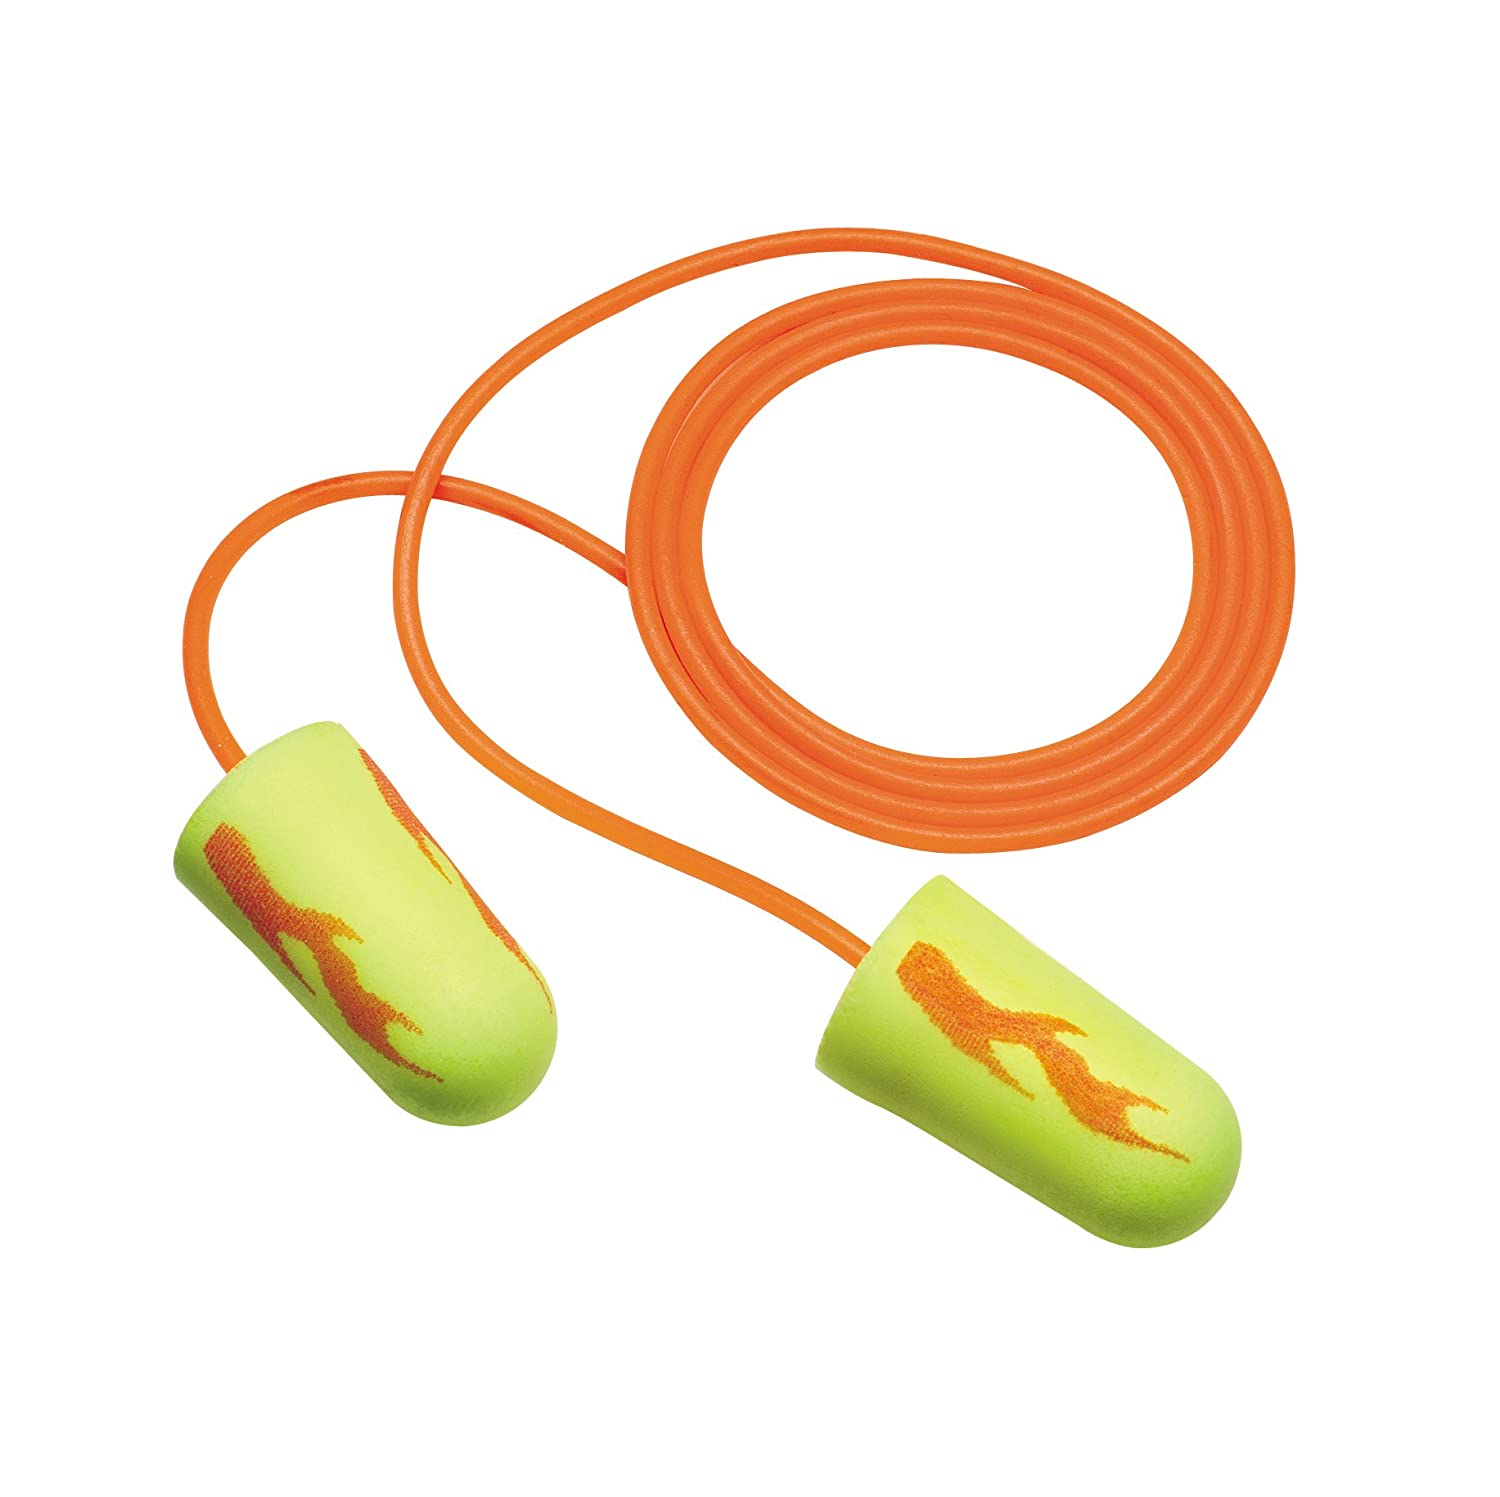 3M E-A-Rsoft Yellow Neon Blasts Corded Earplugs, Hearing Conservation 311-1257 in Poly Bag Regular Size (Pack of 100) by 3M   B008MCUJJ0